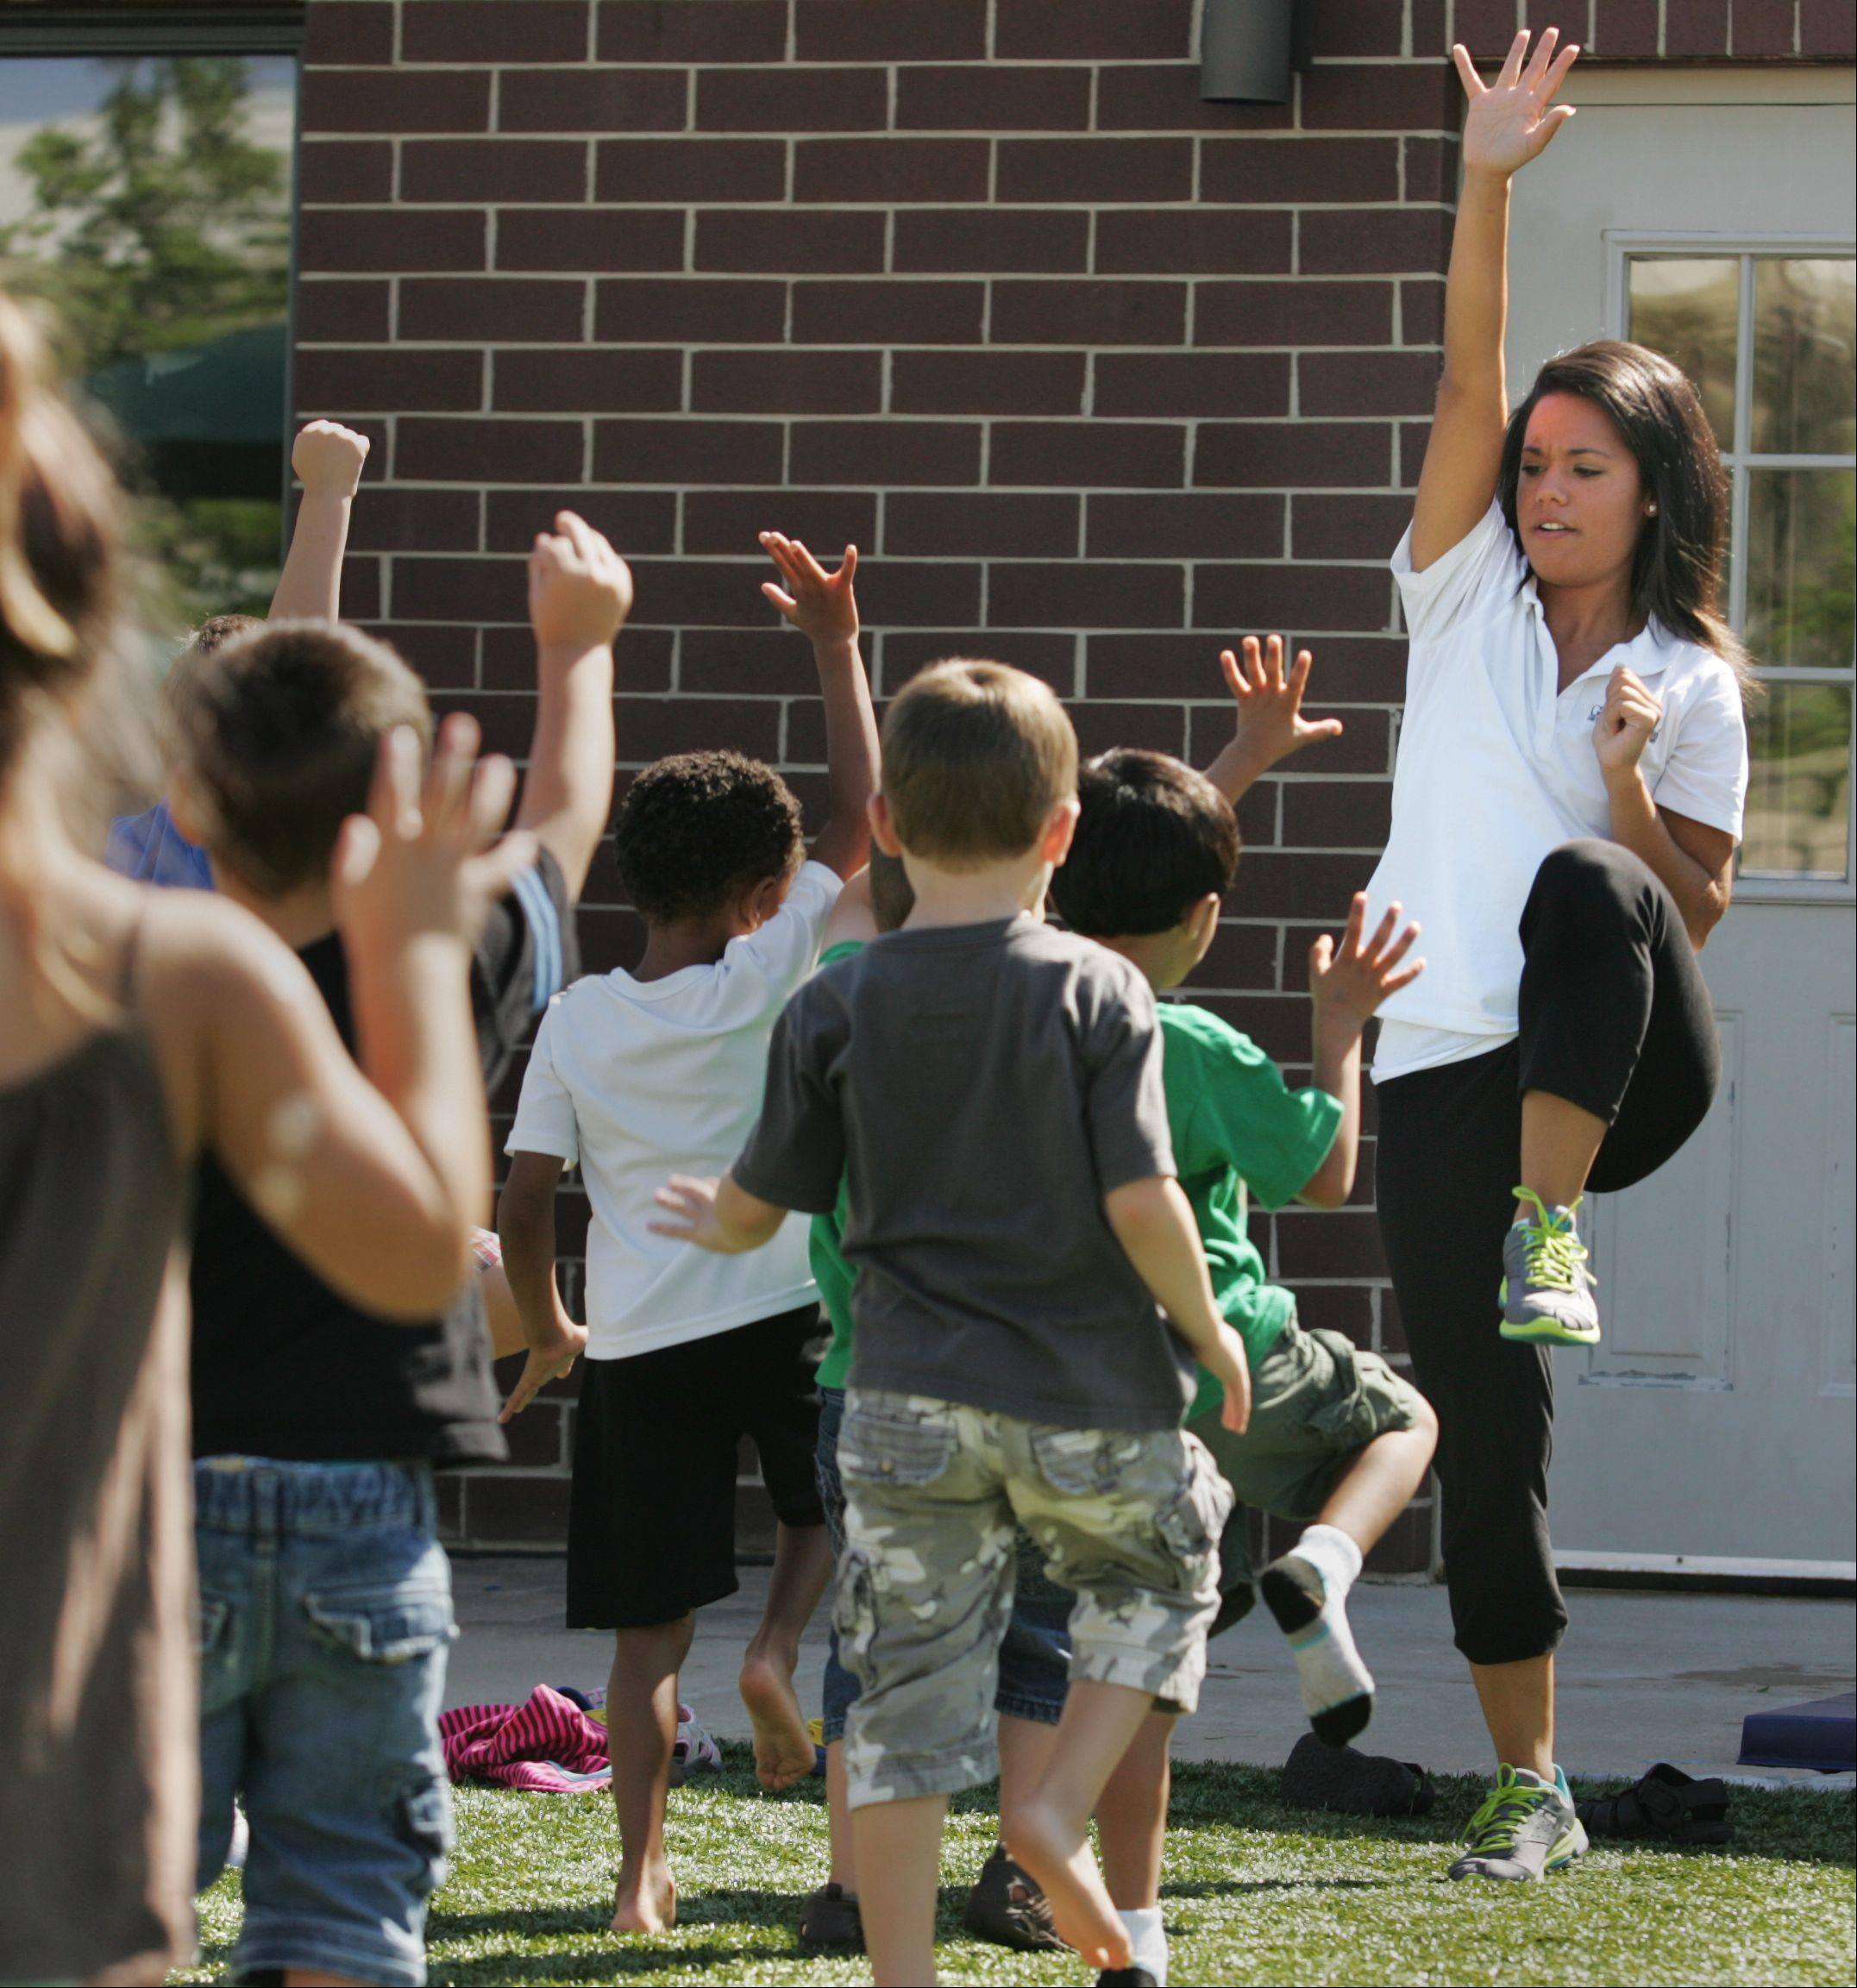 New physical education teacher Nichole Vittorino works with young students at the Goddard School in Elgin. Vittorino, 25, from Gilberts, is the first PE teacher from among 400 Goddard locations across the country.